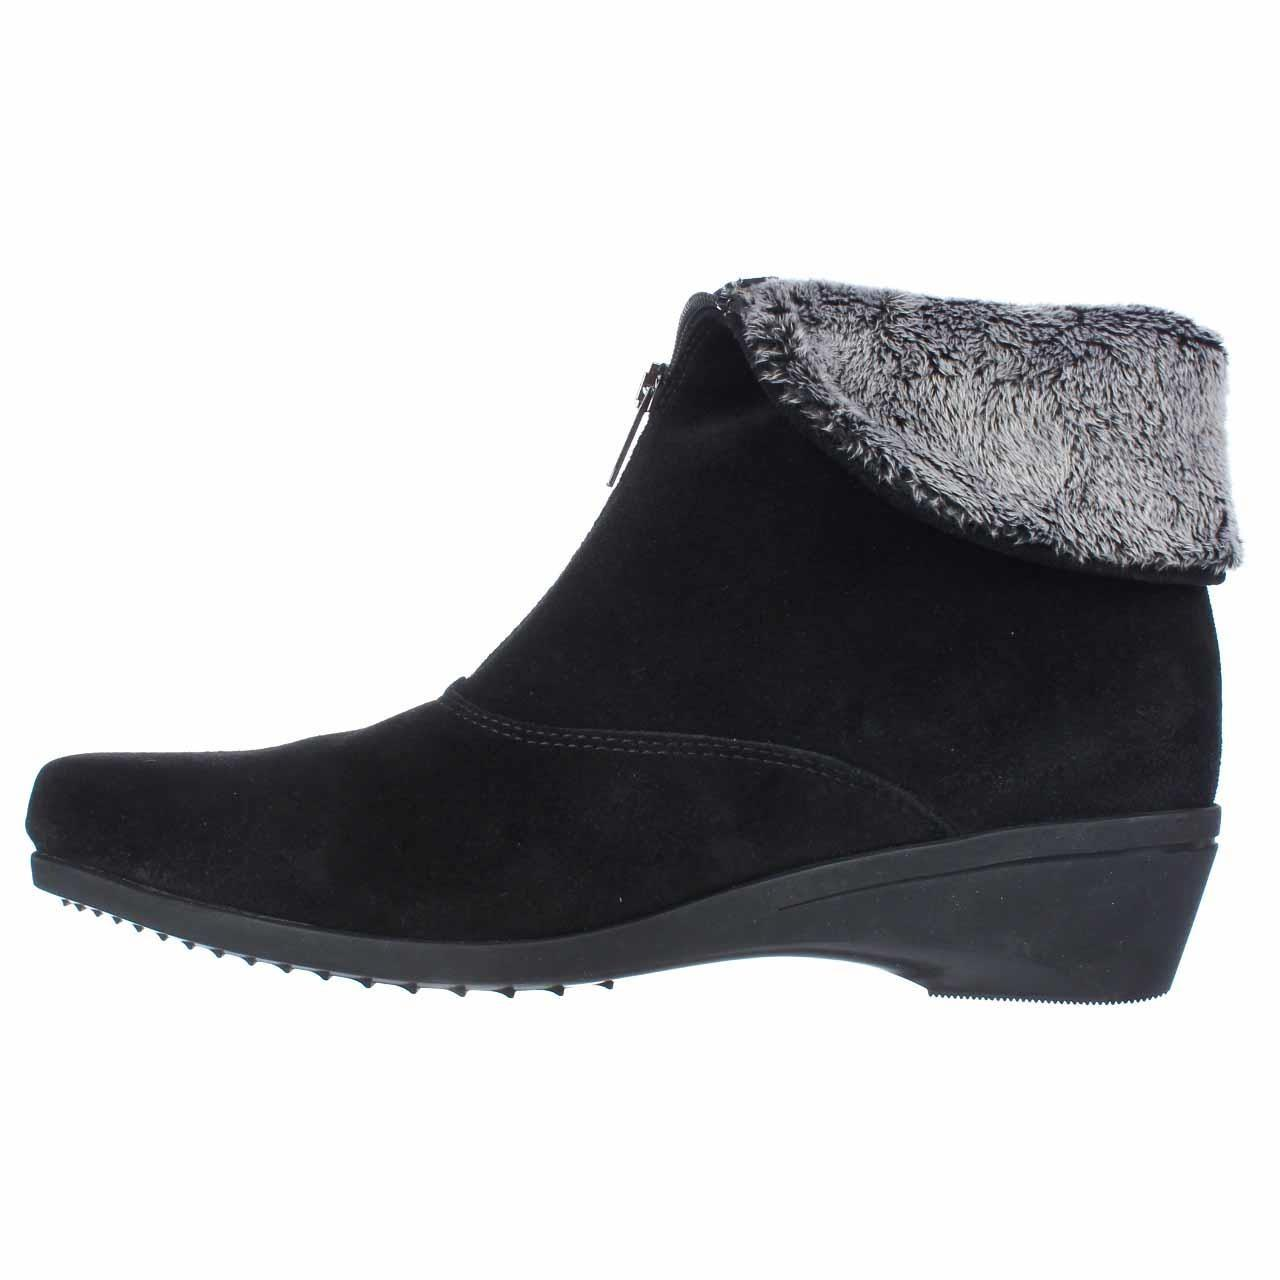 La Canadienne Evitta Wedge Ankle Boots In Black Lyst